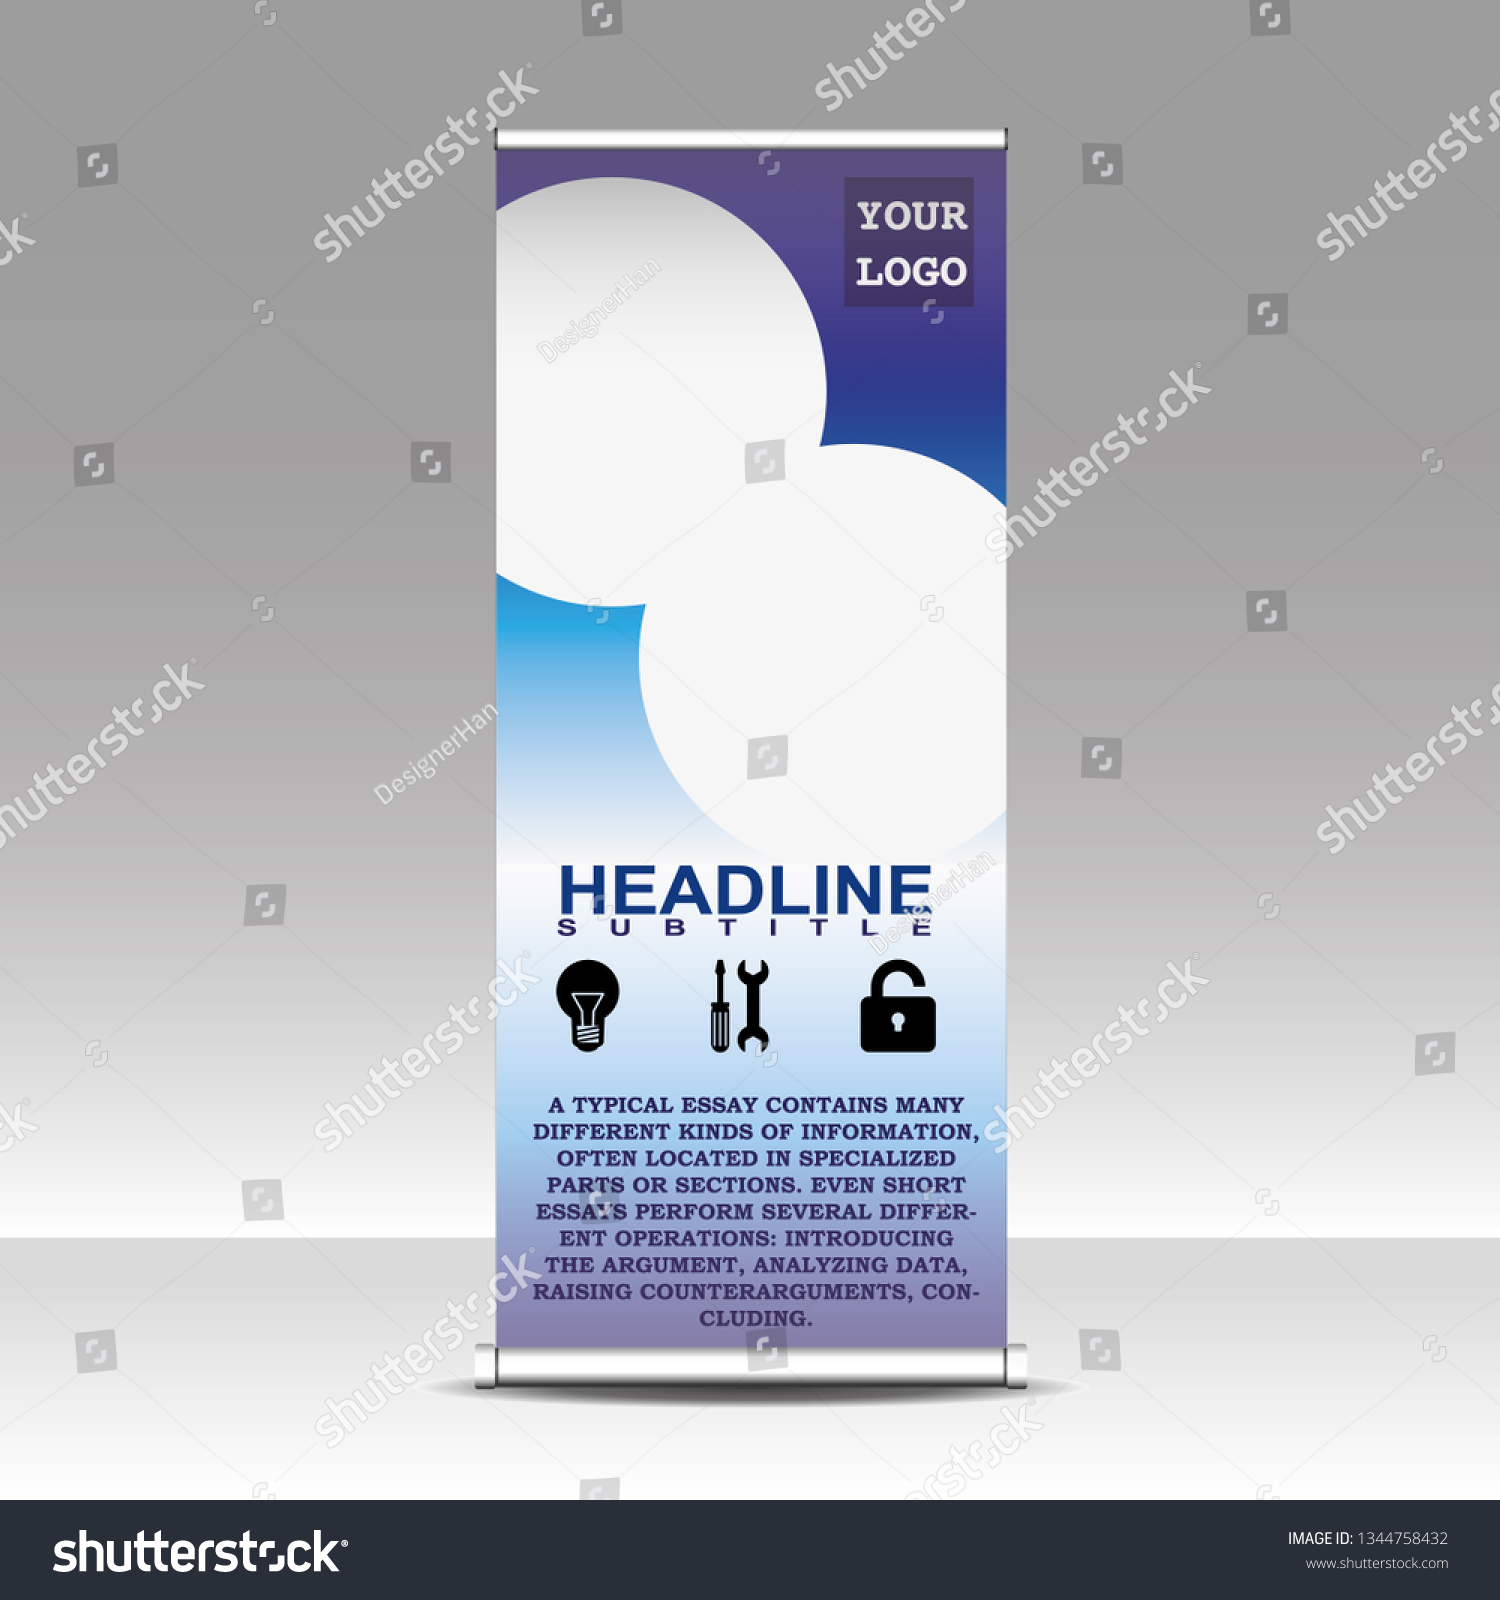 Commercial Use Informative Roll Banner Design Stock Vector Royalty Free 1344758432